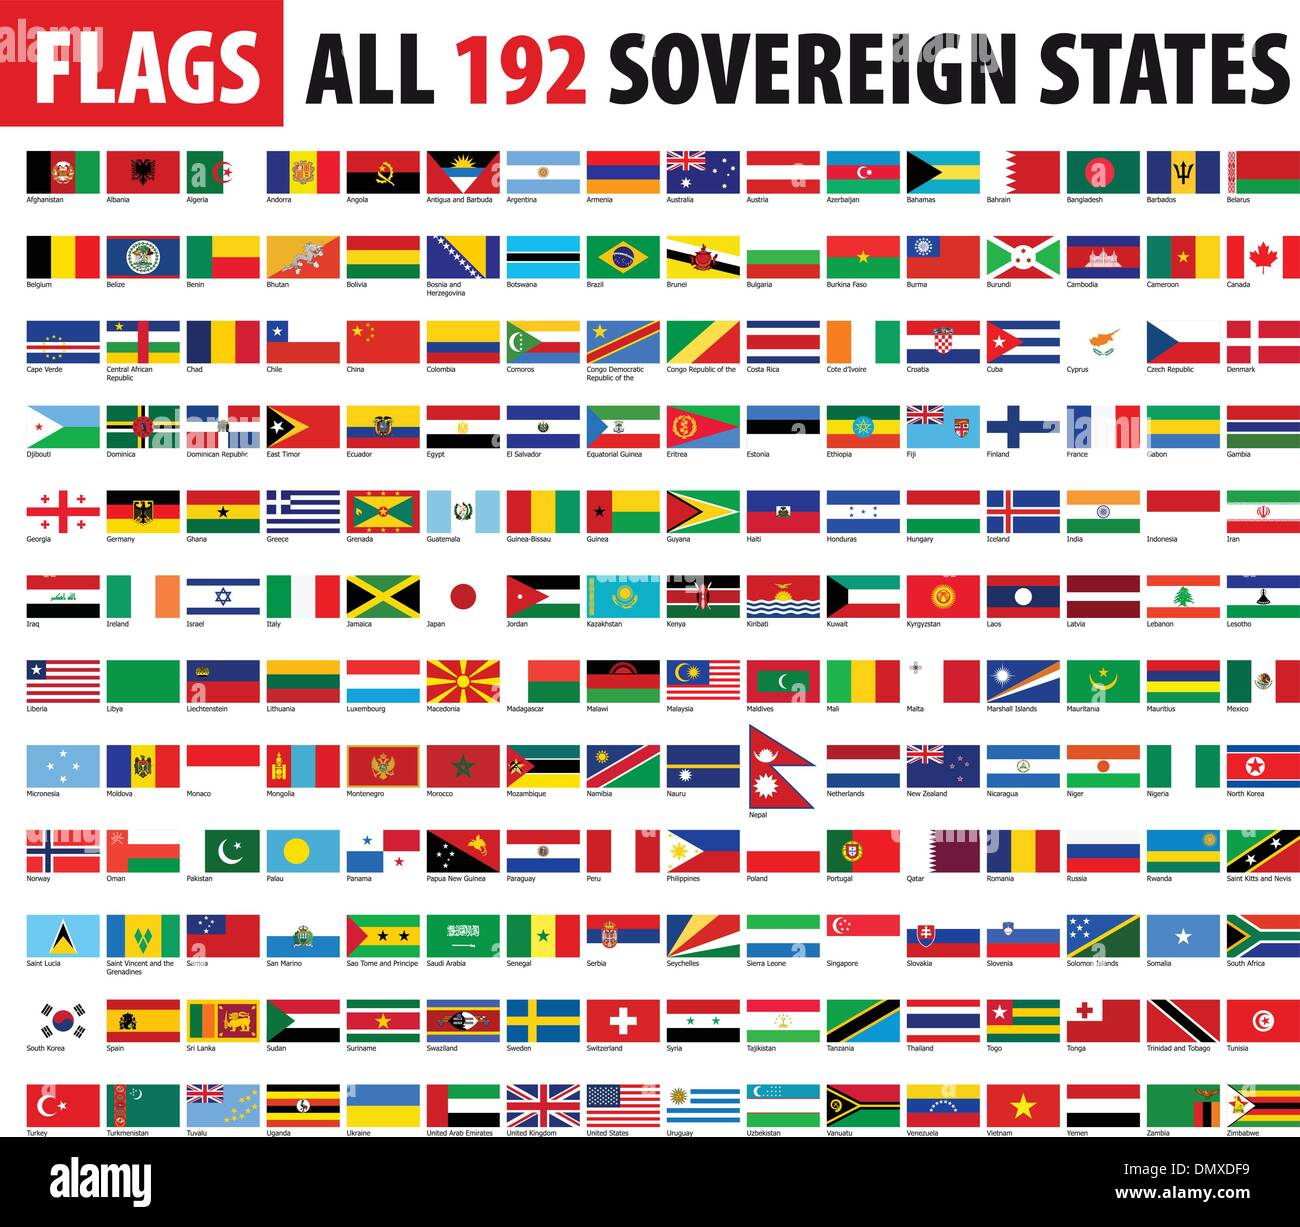 All 192 Sovereign States - World Flags Series - Stock Vector